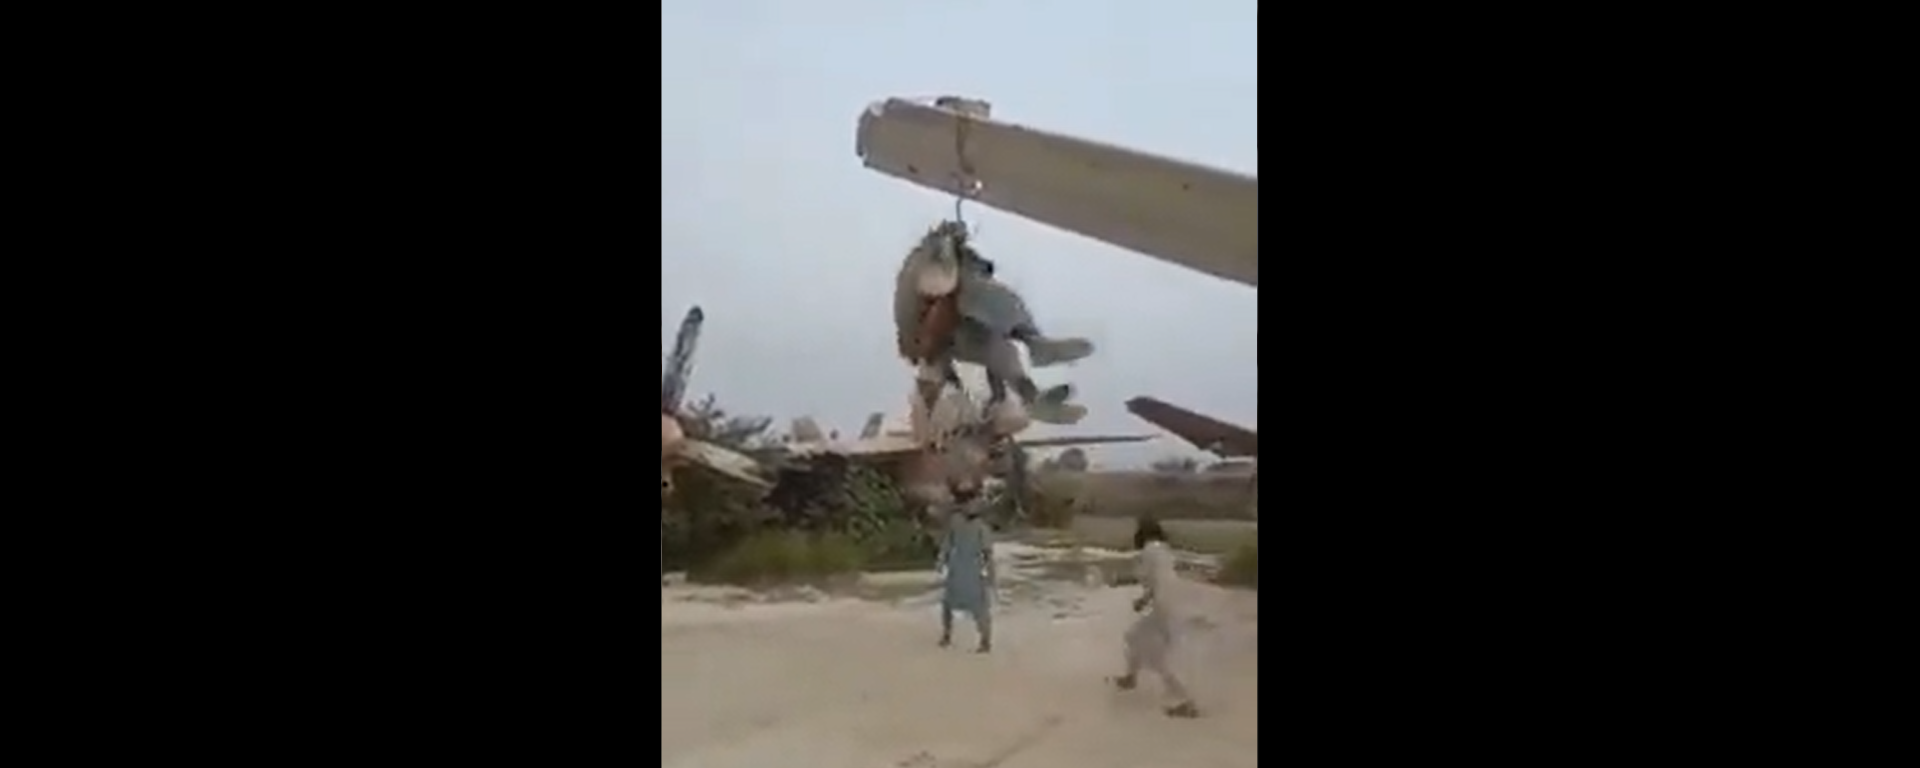 Screenshot from a video allegedly showing the Taliban fighters making a swing on a US military plane - Sputnik International, 1920, 10.09.2021